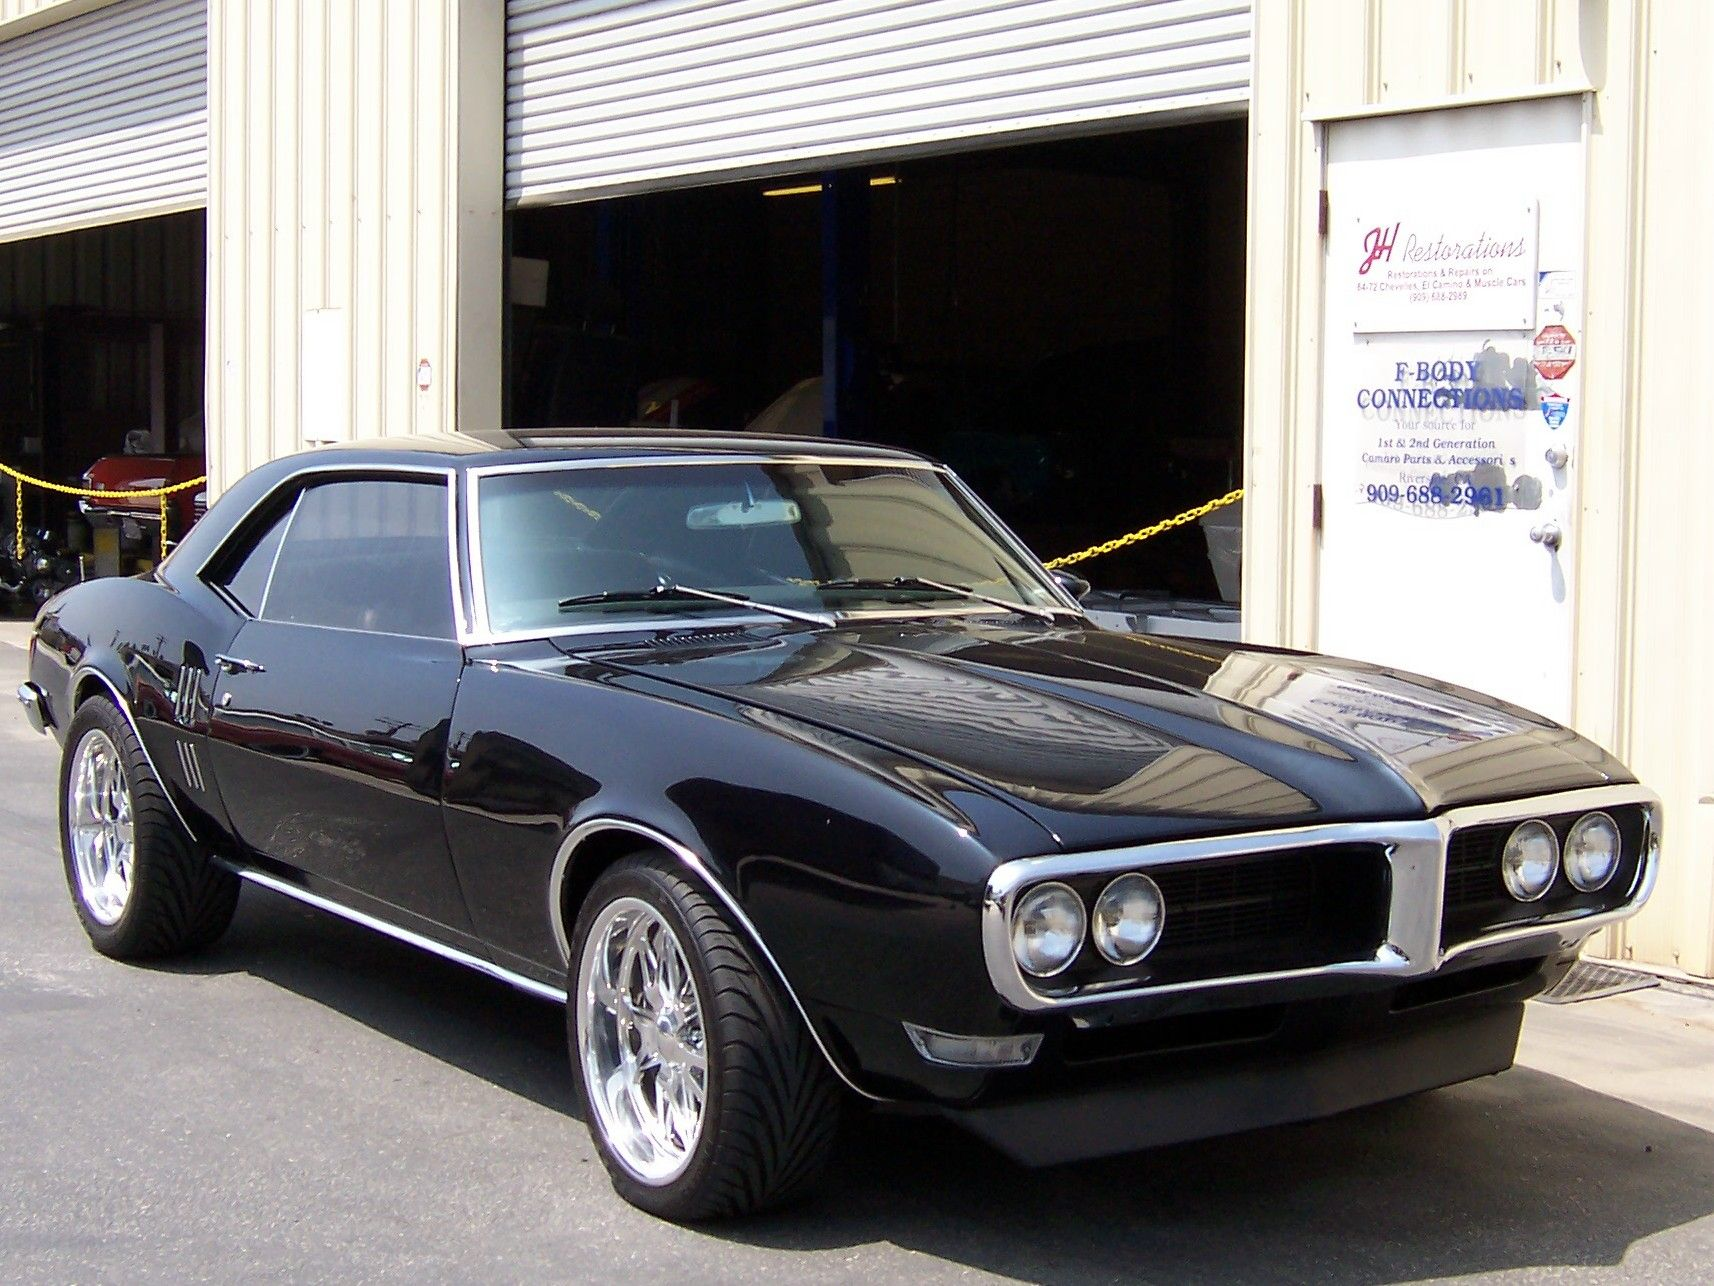 67 Pontiac Firebird I used to have one just like this. My dream ...